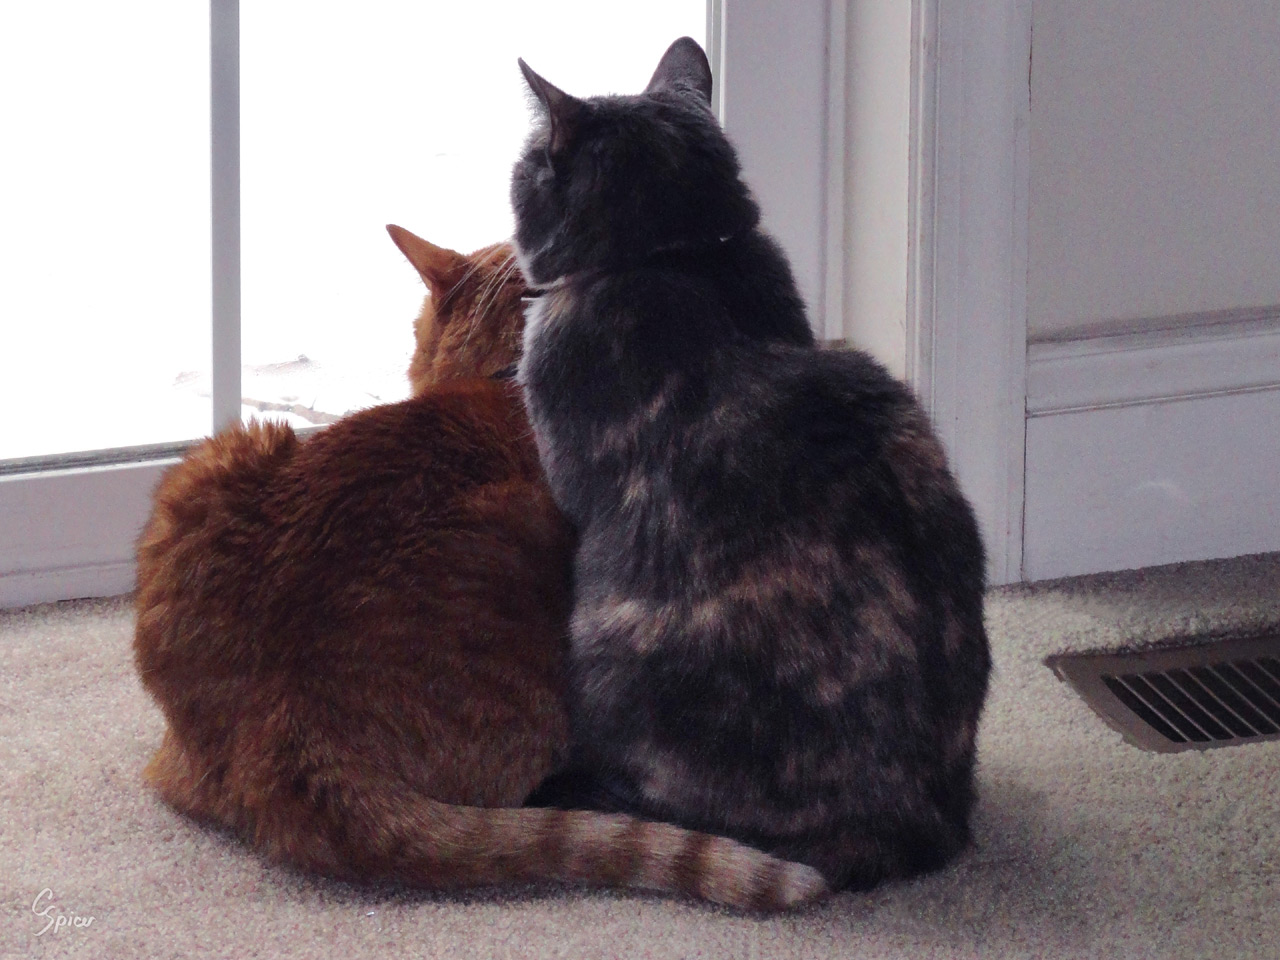 Discovery for Maggie and Milo: Digital Photograph by Christopher Spicer - Two cats find comfort cuddled together as they stare curiously through a glass door into the mysteries of the world beyond.